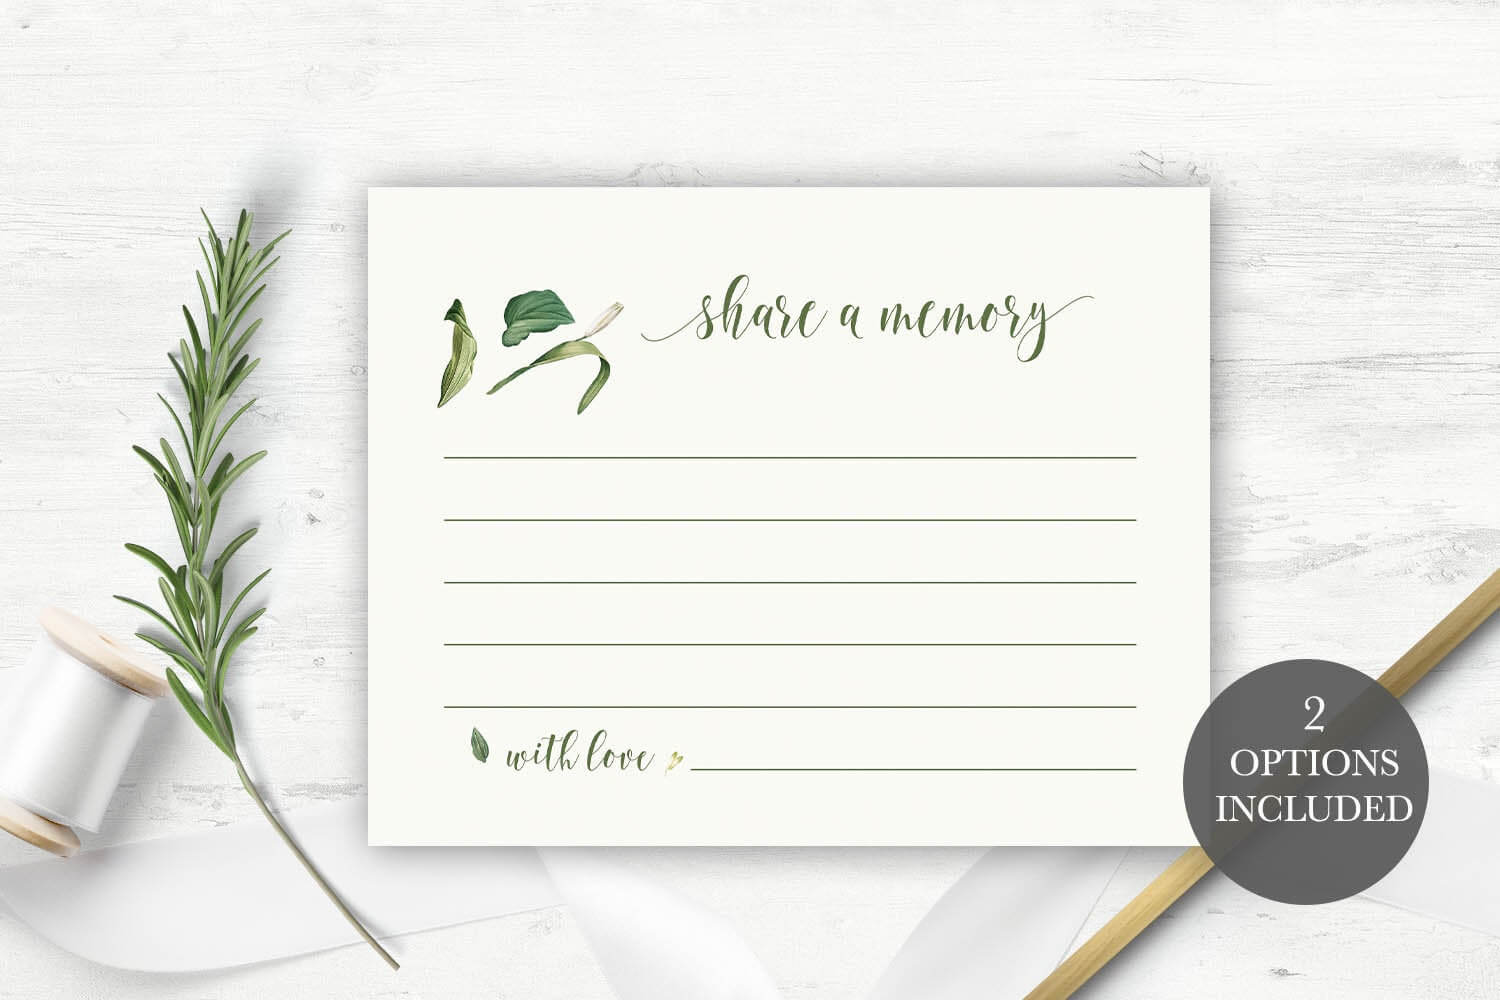 Funeral Share A Memory Card | Printable Funeral Memory Card | Greenery  Memorial Card Template | Funeral Cards | Memorial Cards Template Throughout In Memory Cards Templates